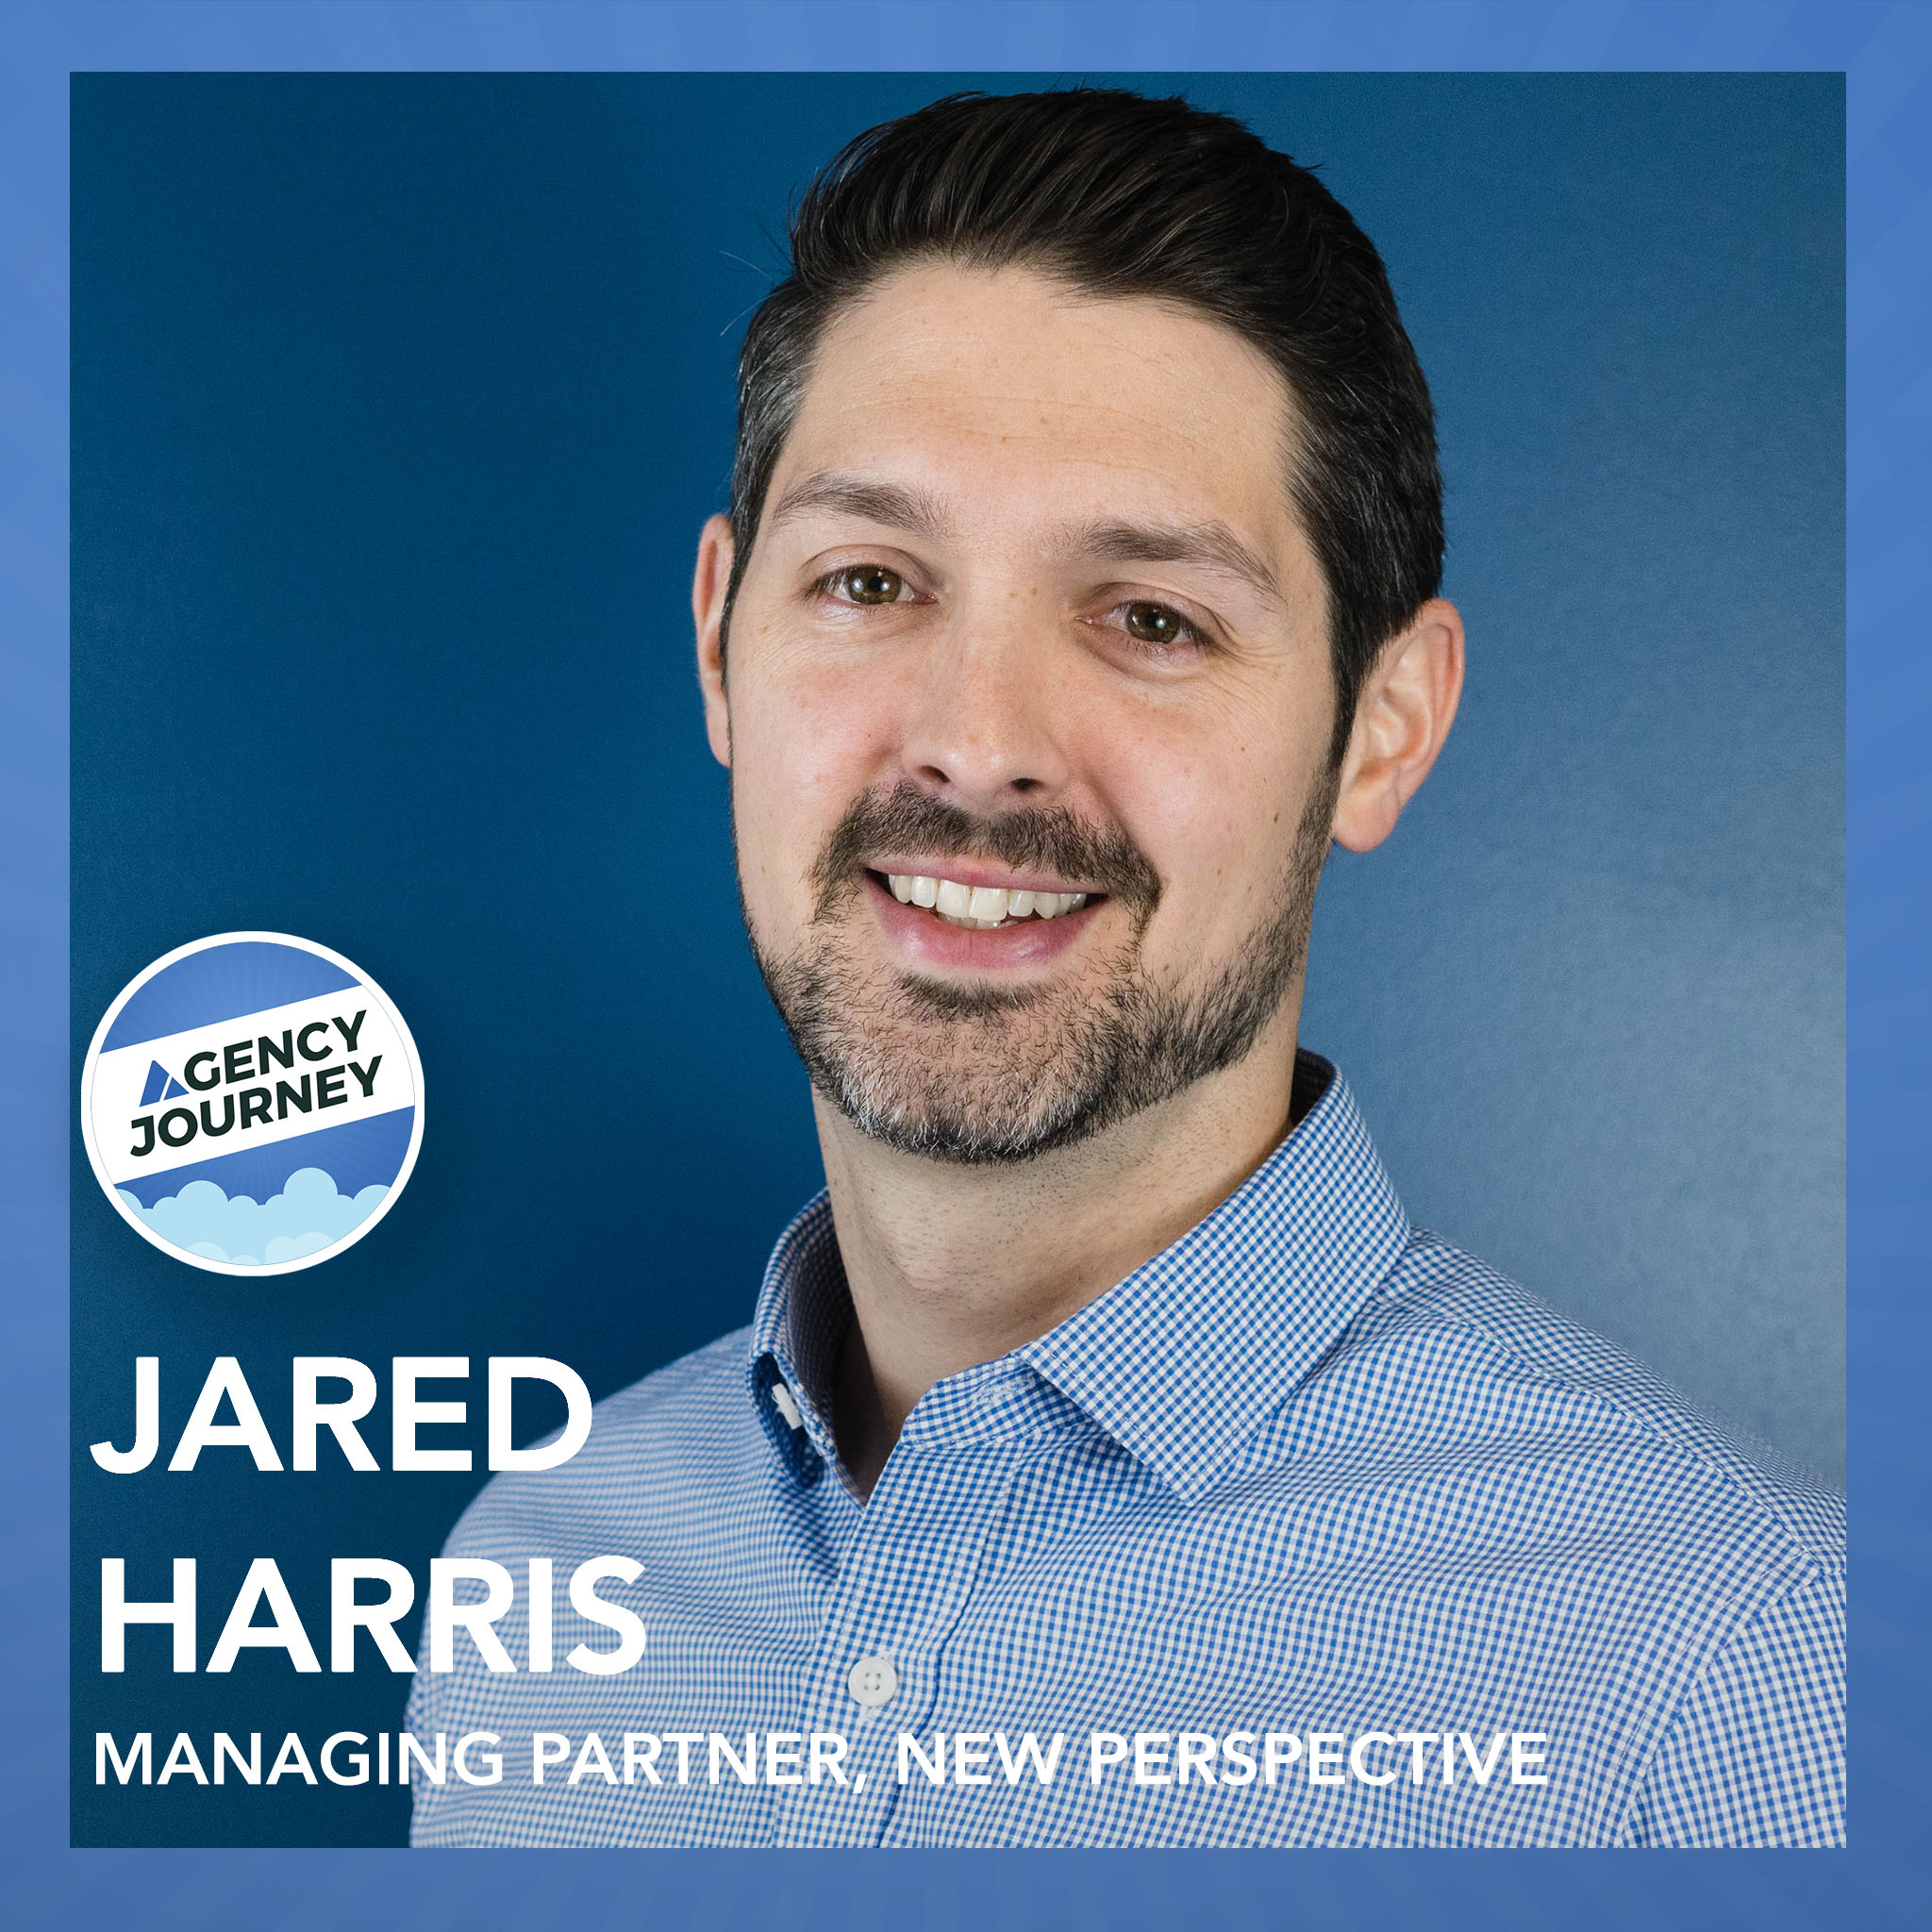 Combining the Power of EOS and Agile at Your Agency with Jared Harris